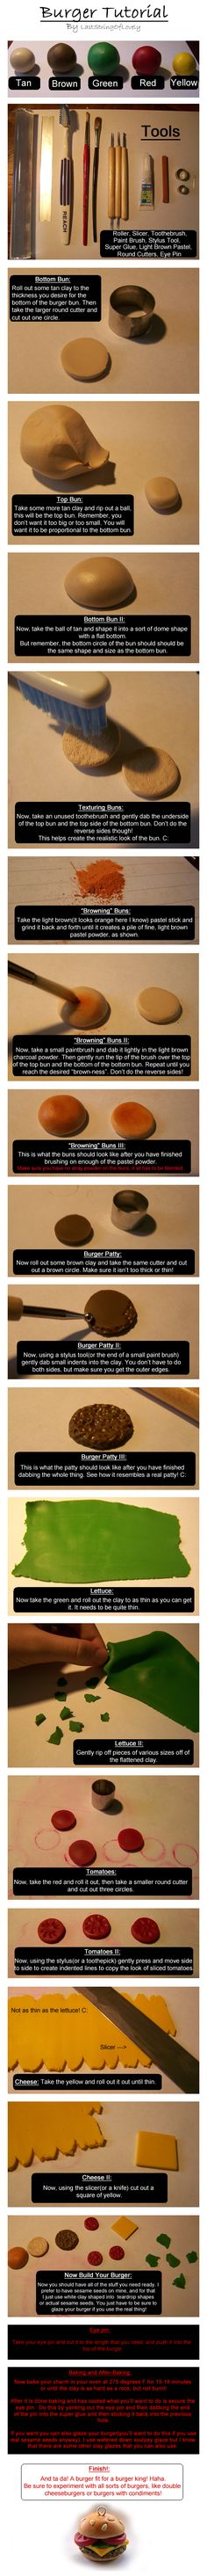 Tutorial to make a clay burger, could work for fondant too